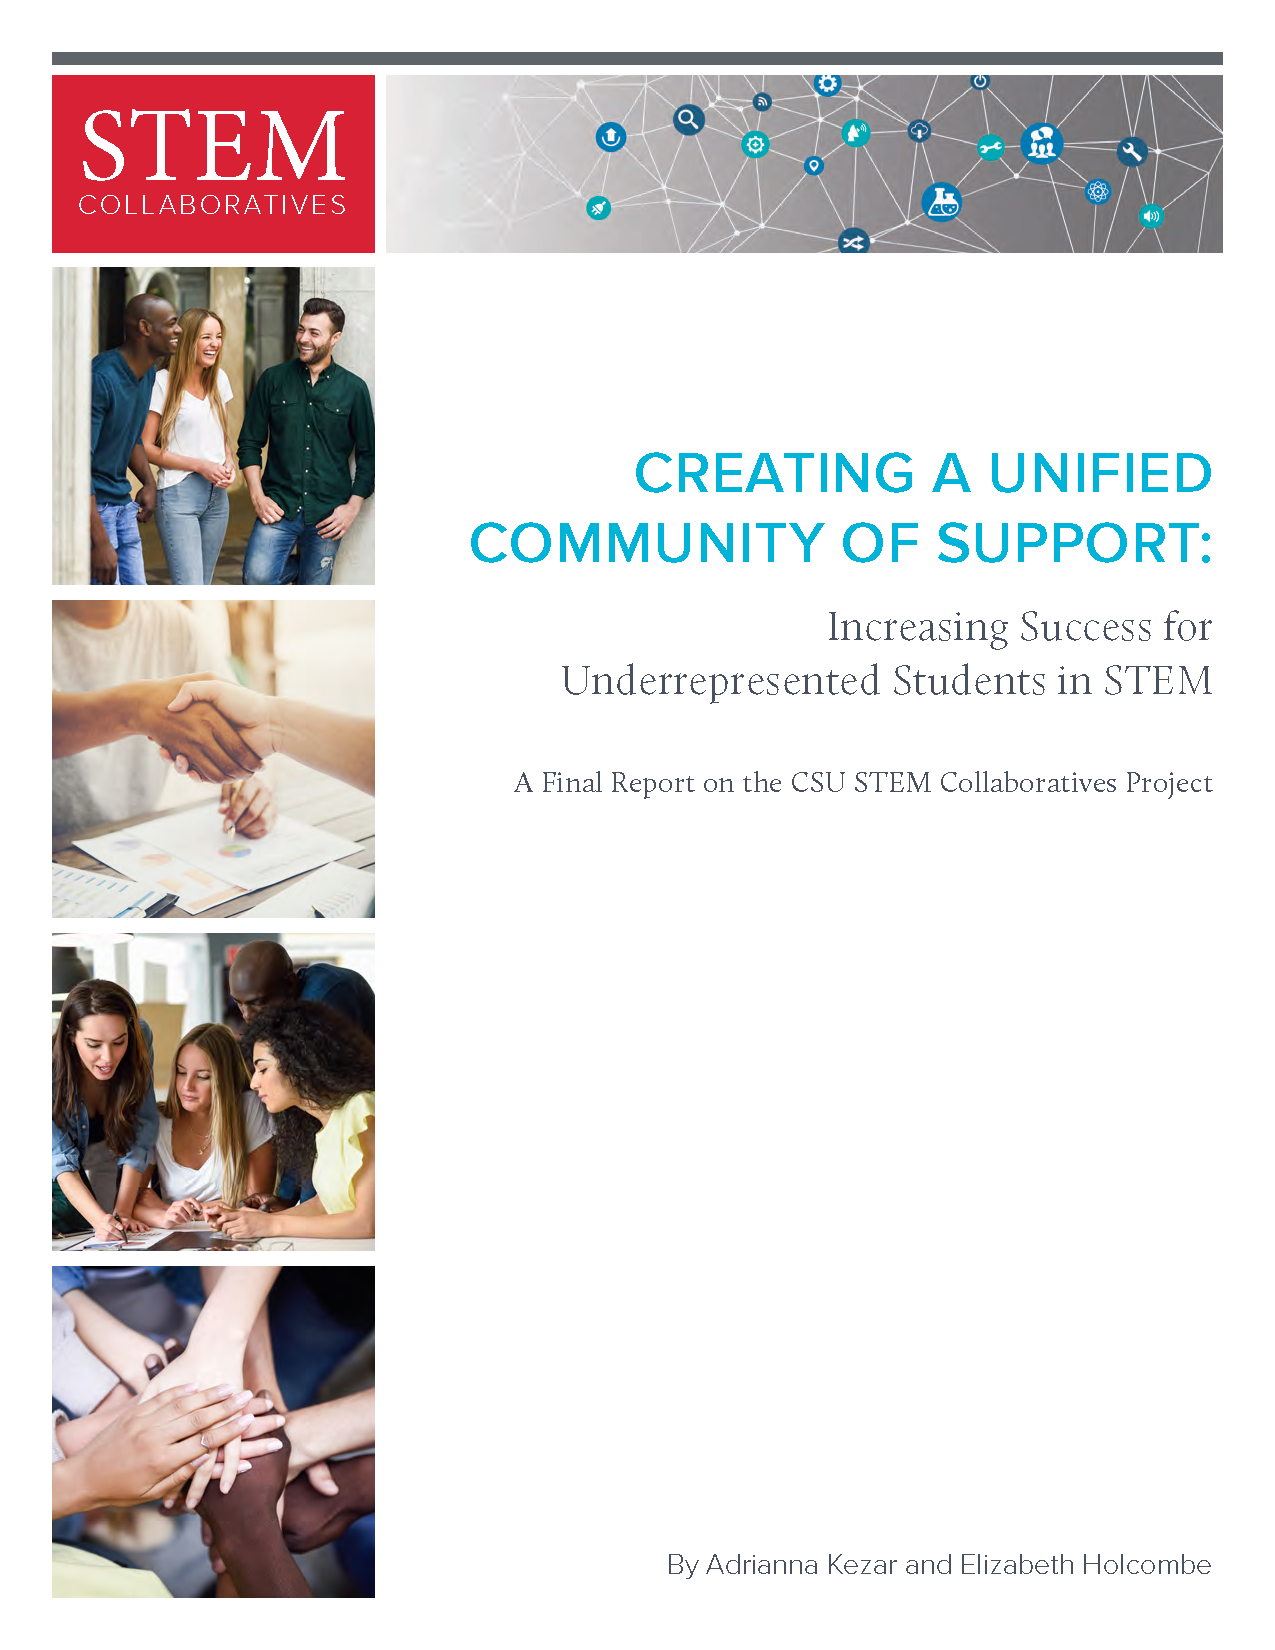 Creating a Unified Community of Support: Increasing Success for Underrepresented Students in STEM